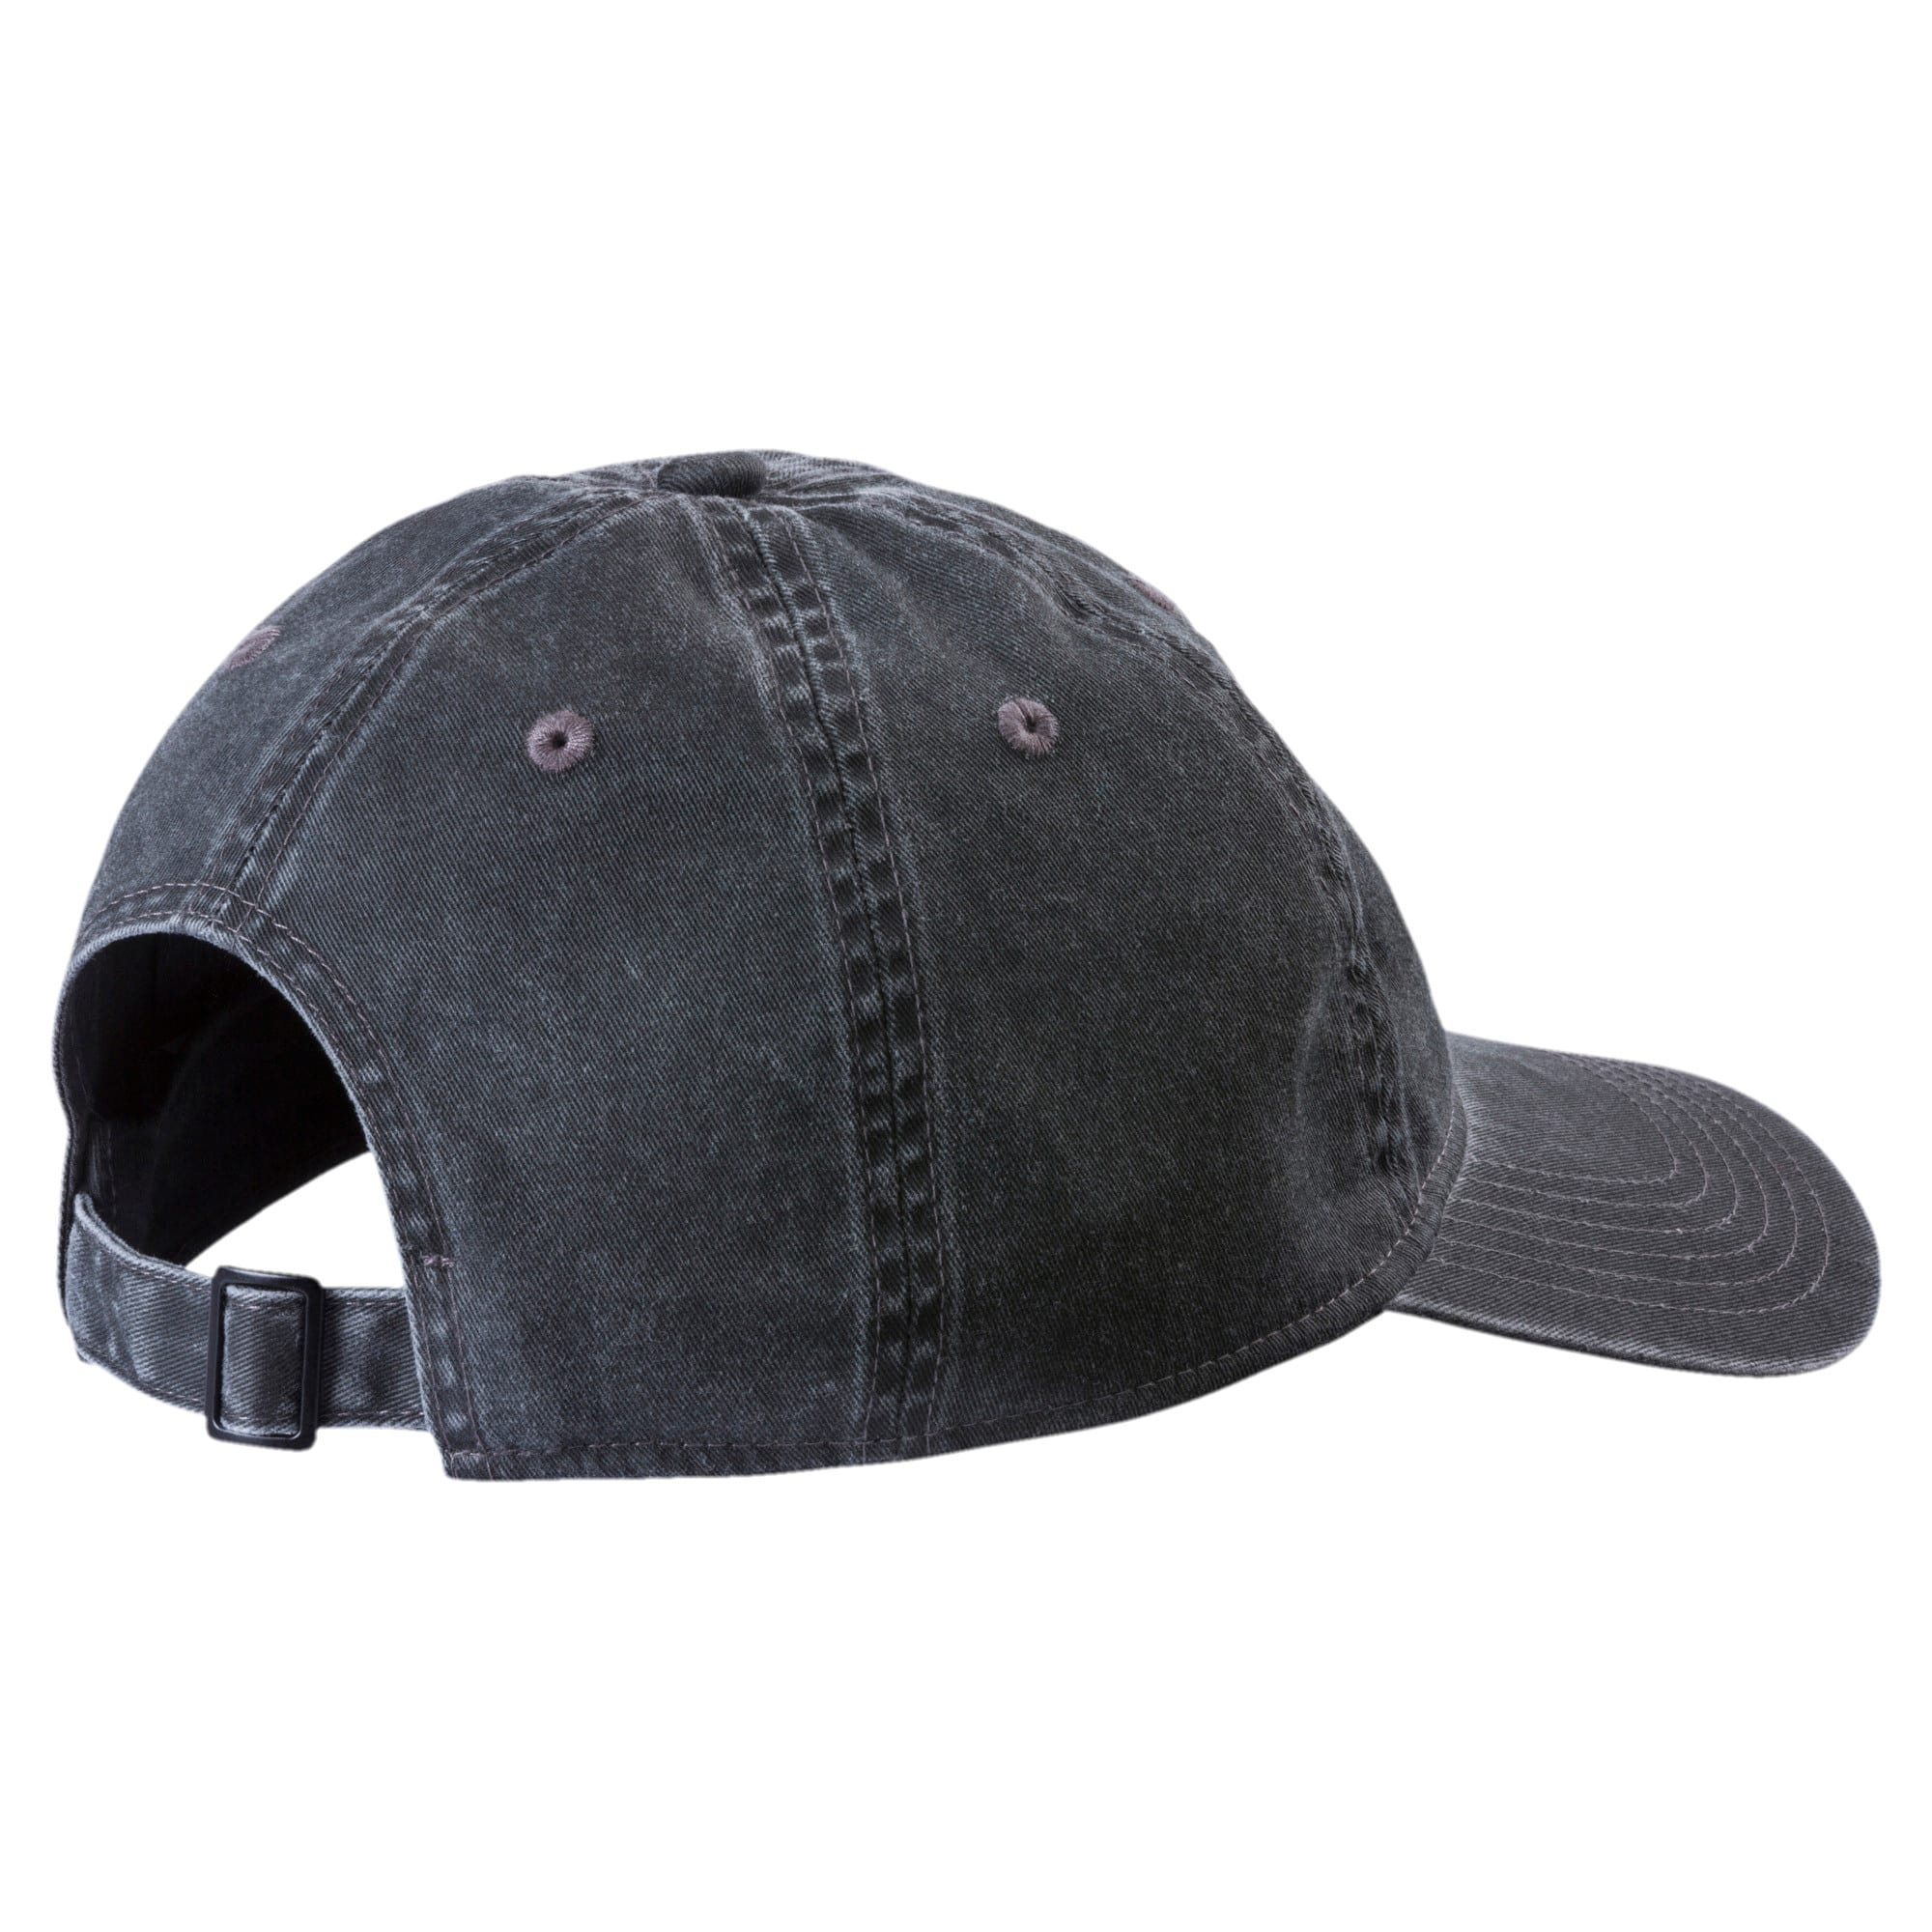 Thumbnail 2 of ARCHIVE BB cap, Puma Black, medium-IND